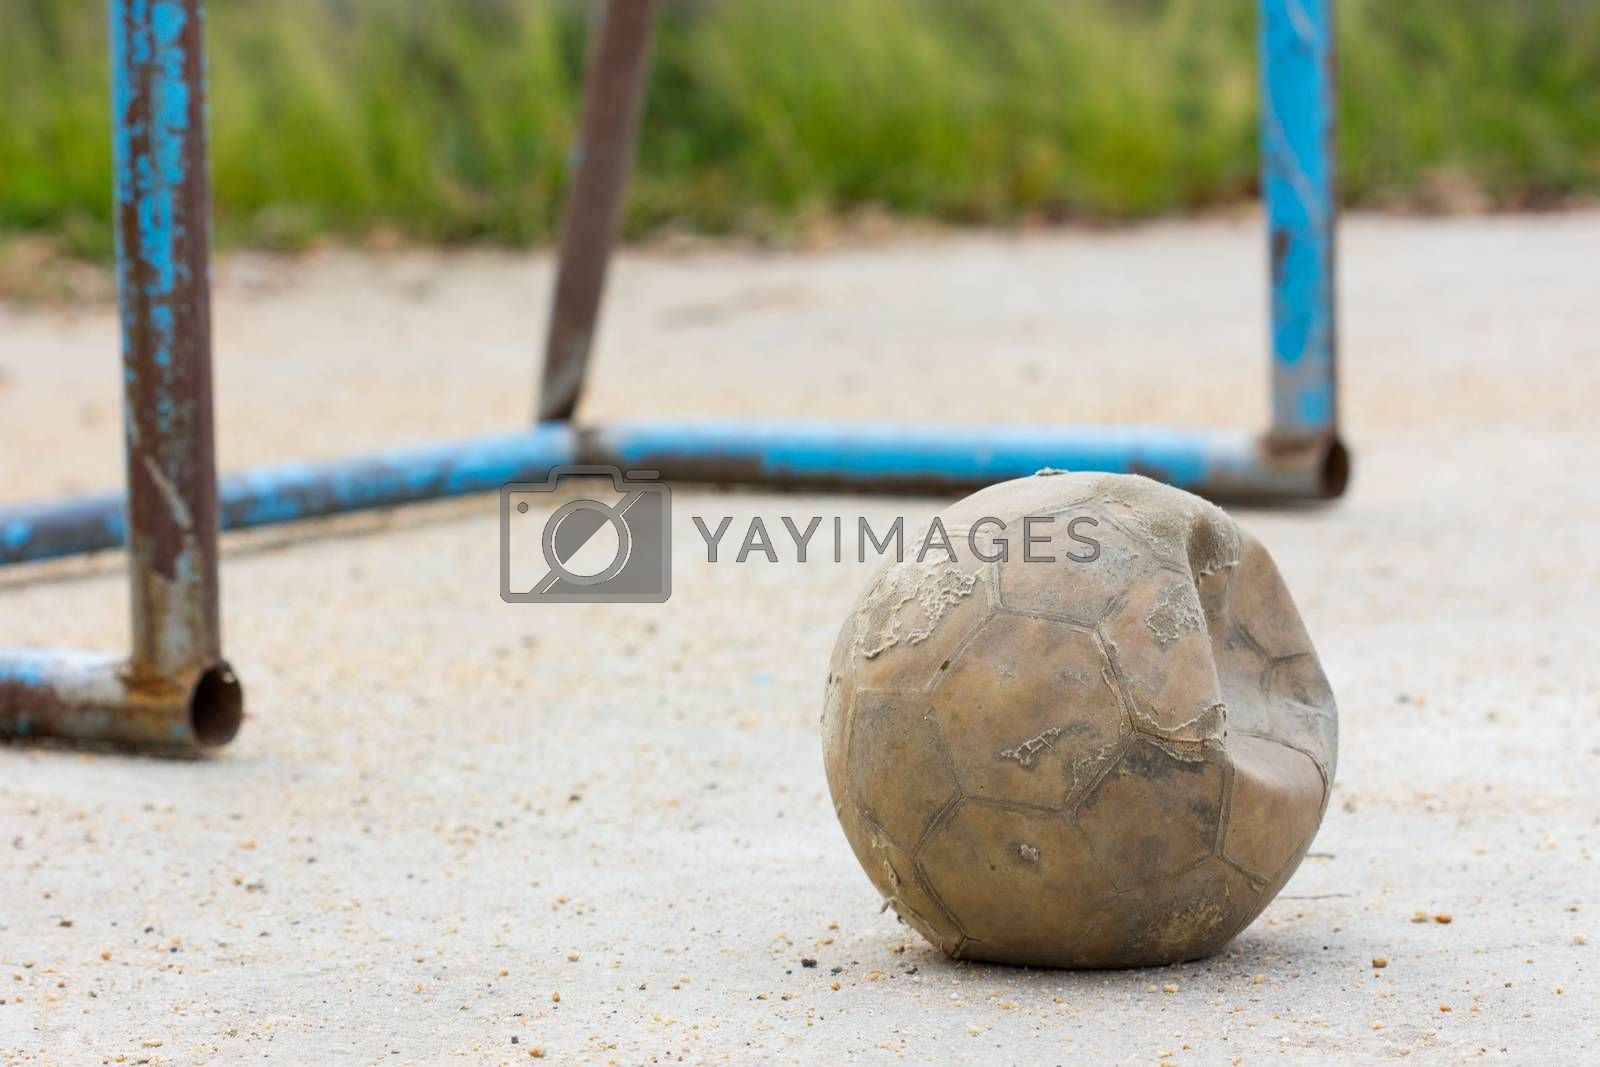 old soccer ball on concrete field with old blue goal